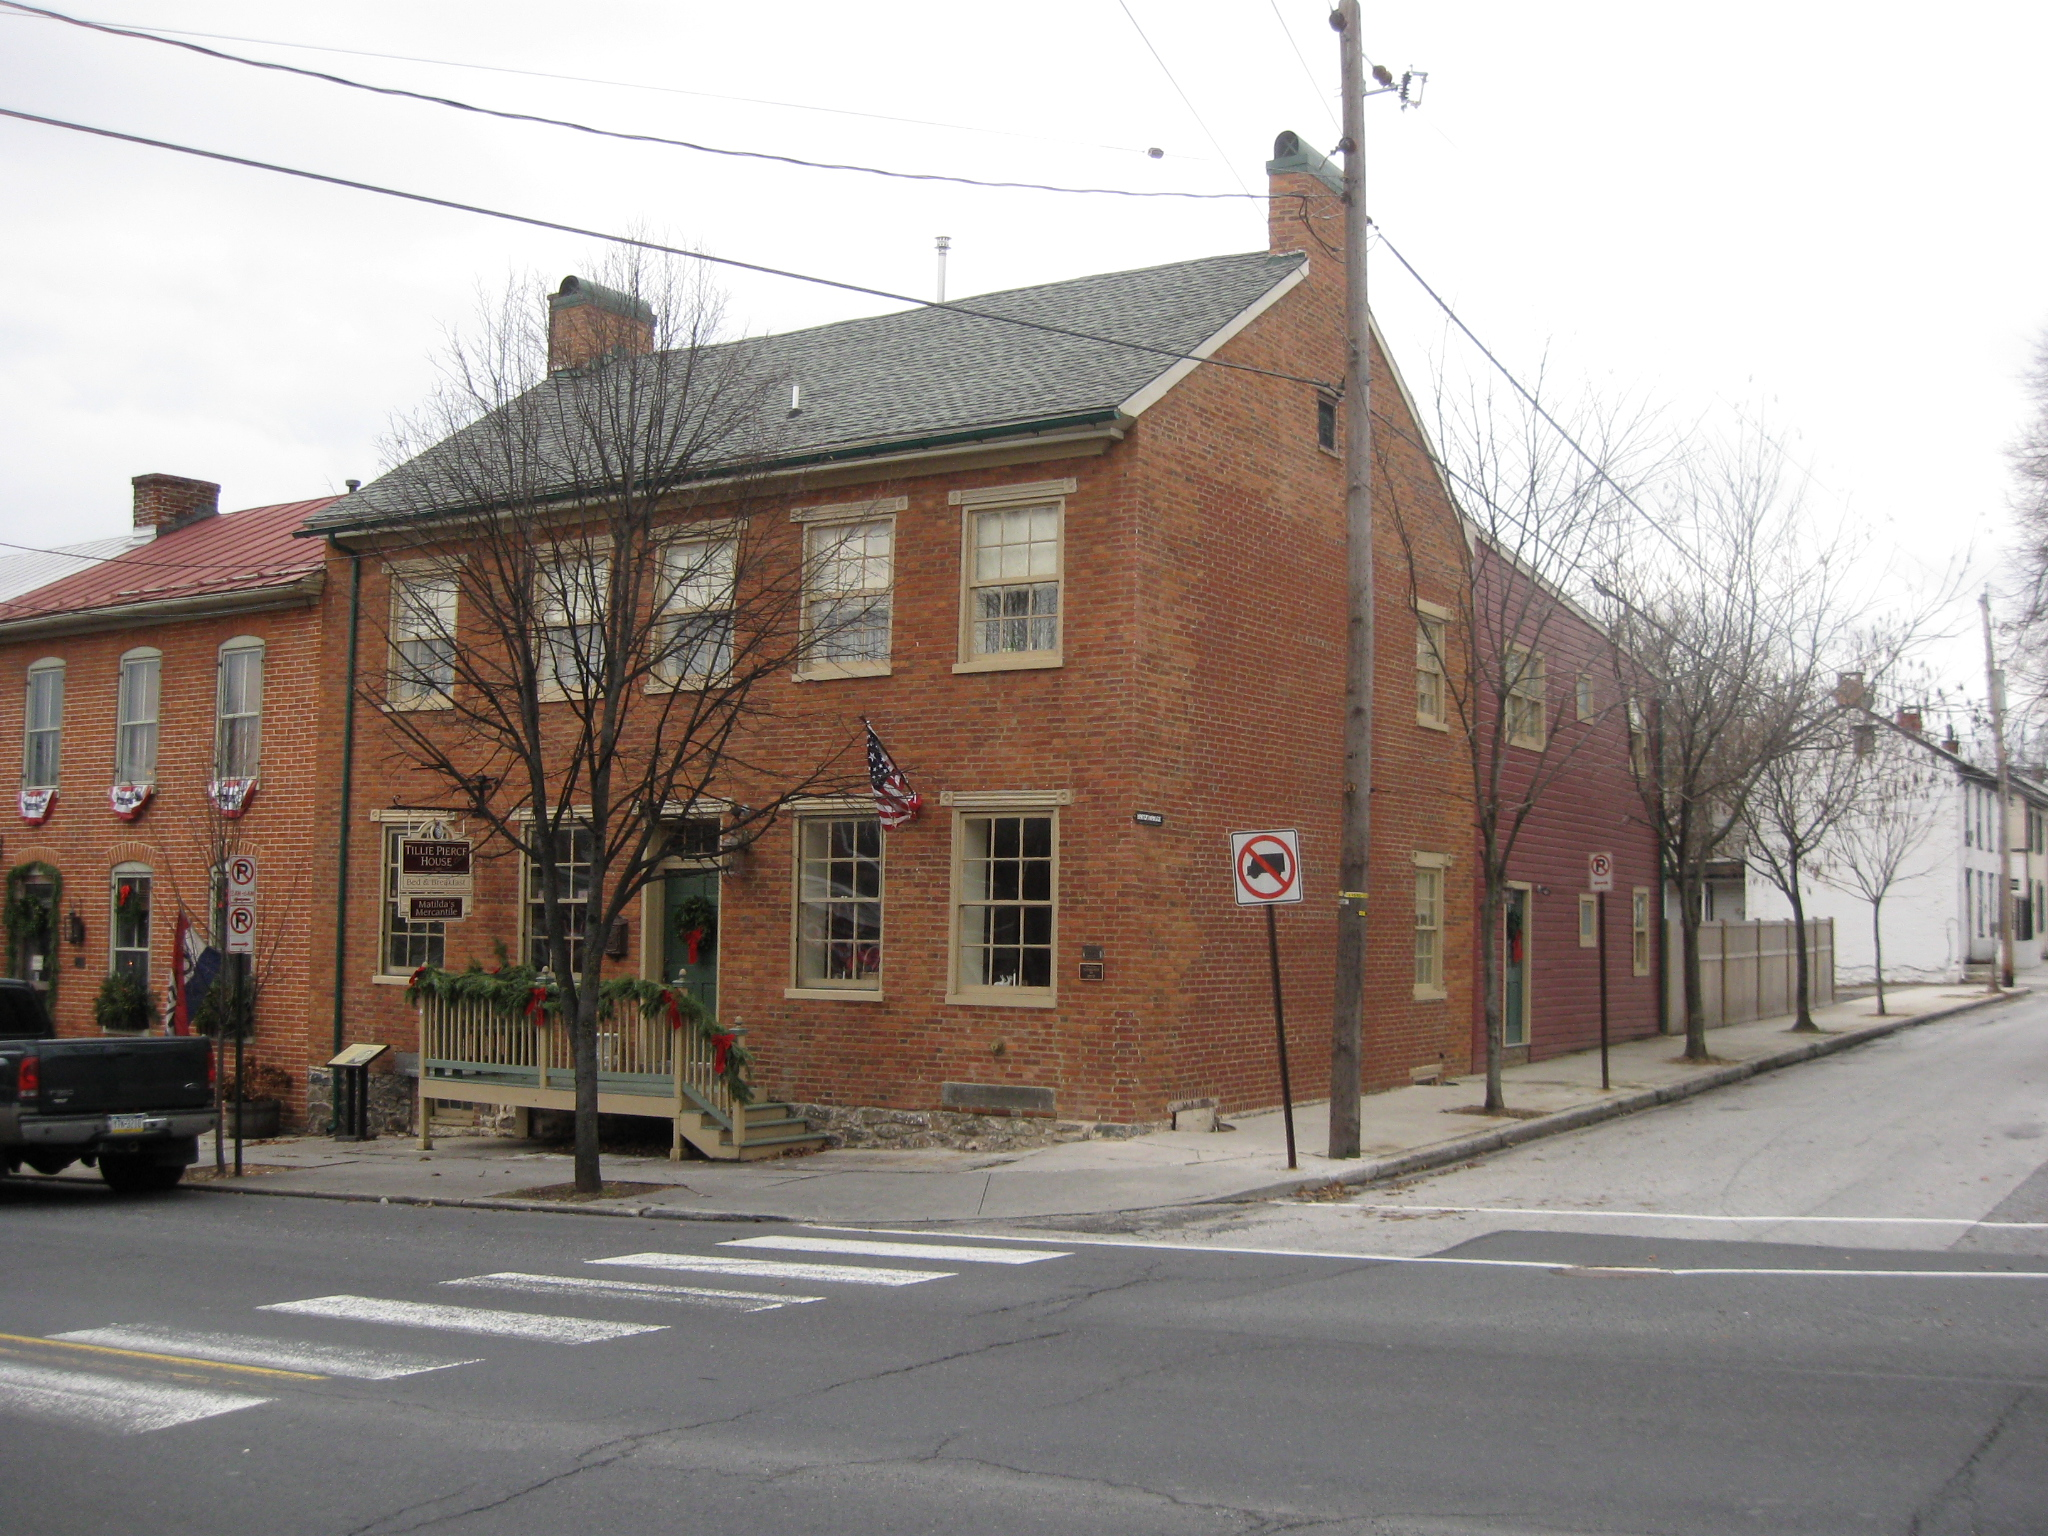 Superior The James Pierce House Is Located On The Southwest Corner Of Baltimore And  Breckinridge Streets. It Was A House And The Location Of The Butcher Shop  In The ...